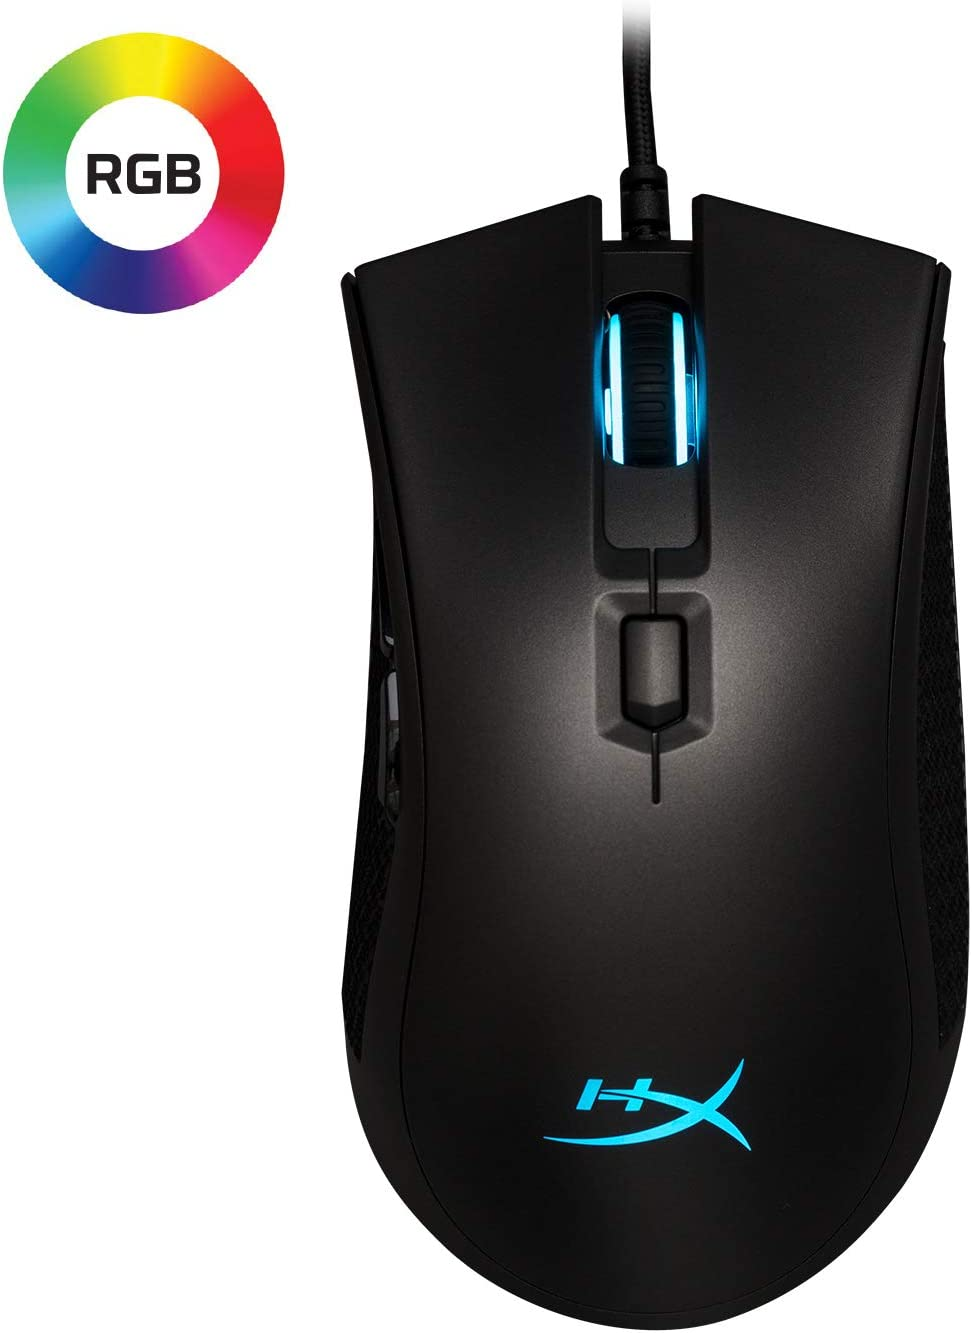 HyperX Pulsefire FPS Pro - Gaming Mouse, Software Controlled RGB Light Effects & Macro Customization, Pixart 3389 Sensor Up to 16,000 DPI, 6 Programmable Buttons, Mouse Weight 95g